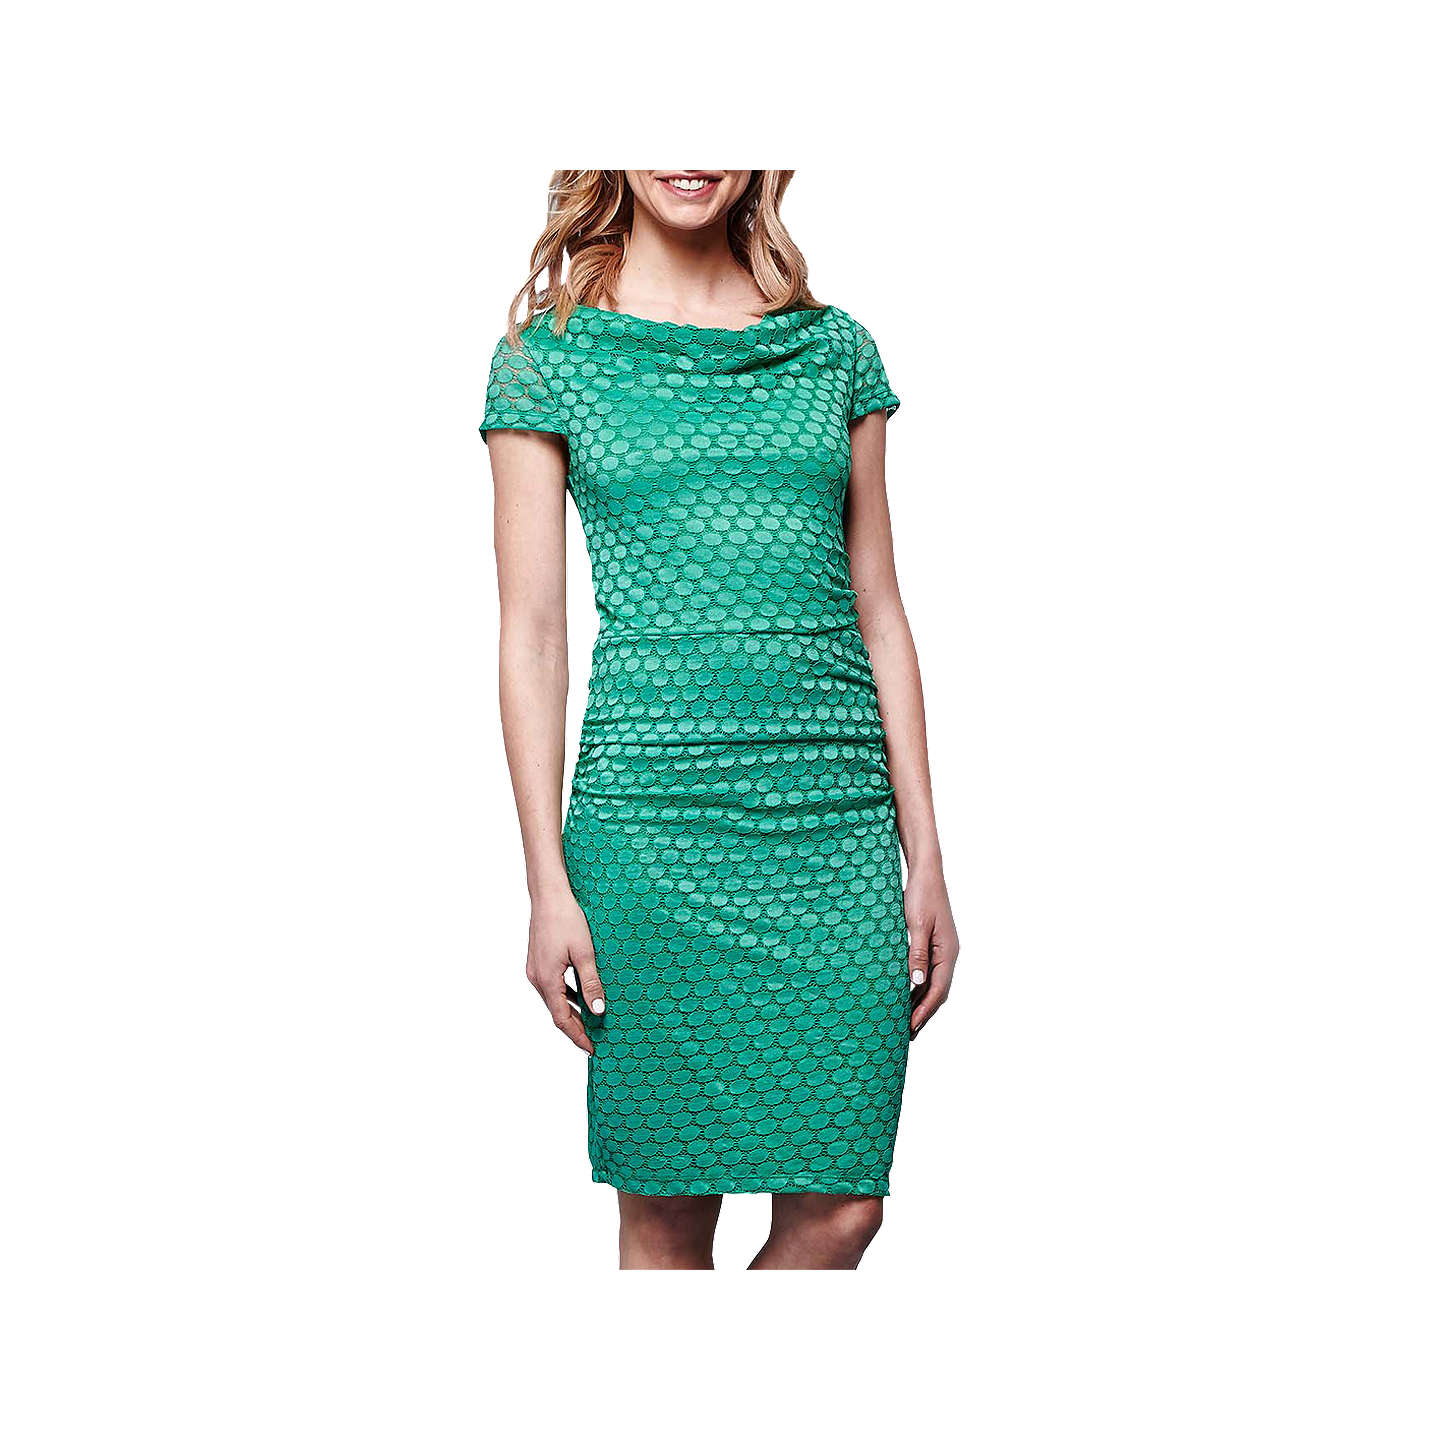 Yumi Lace Cowl Neck Bodycon Dress, Jade at John Lewis